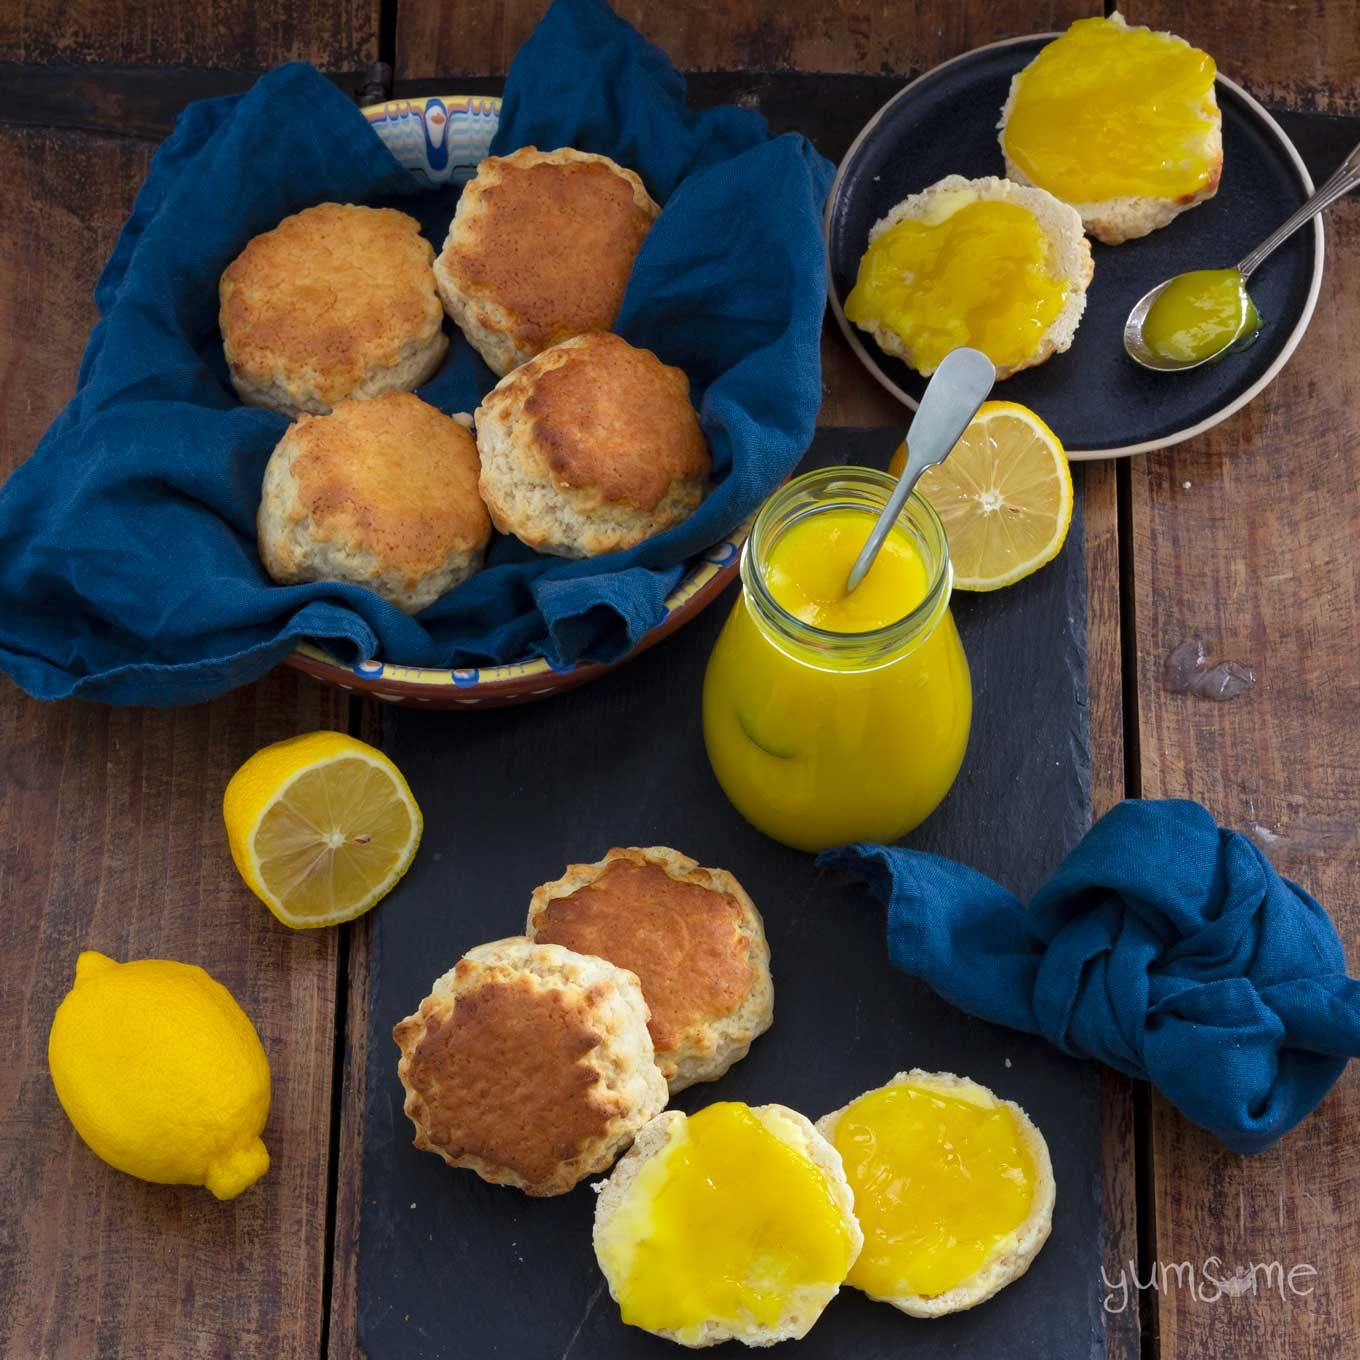 A lot of scones and a jar of lemon curd on a wooden table, along with some blue napkins.